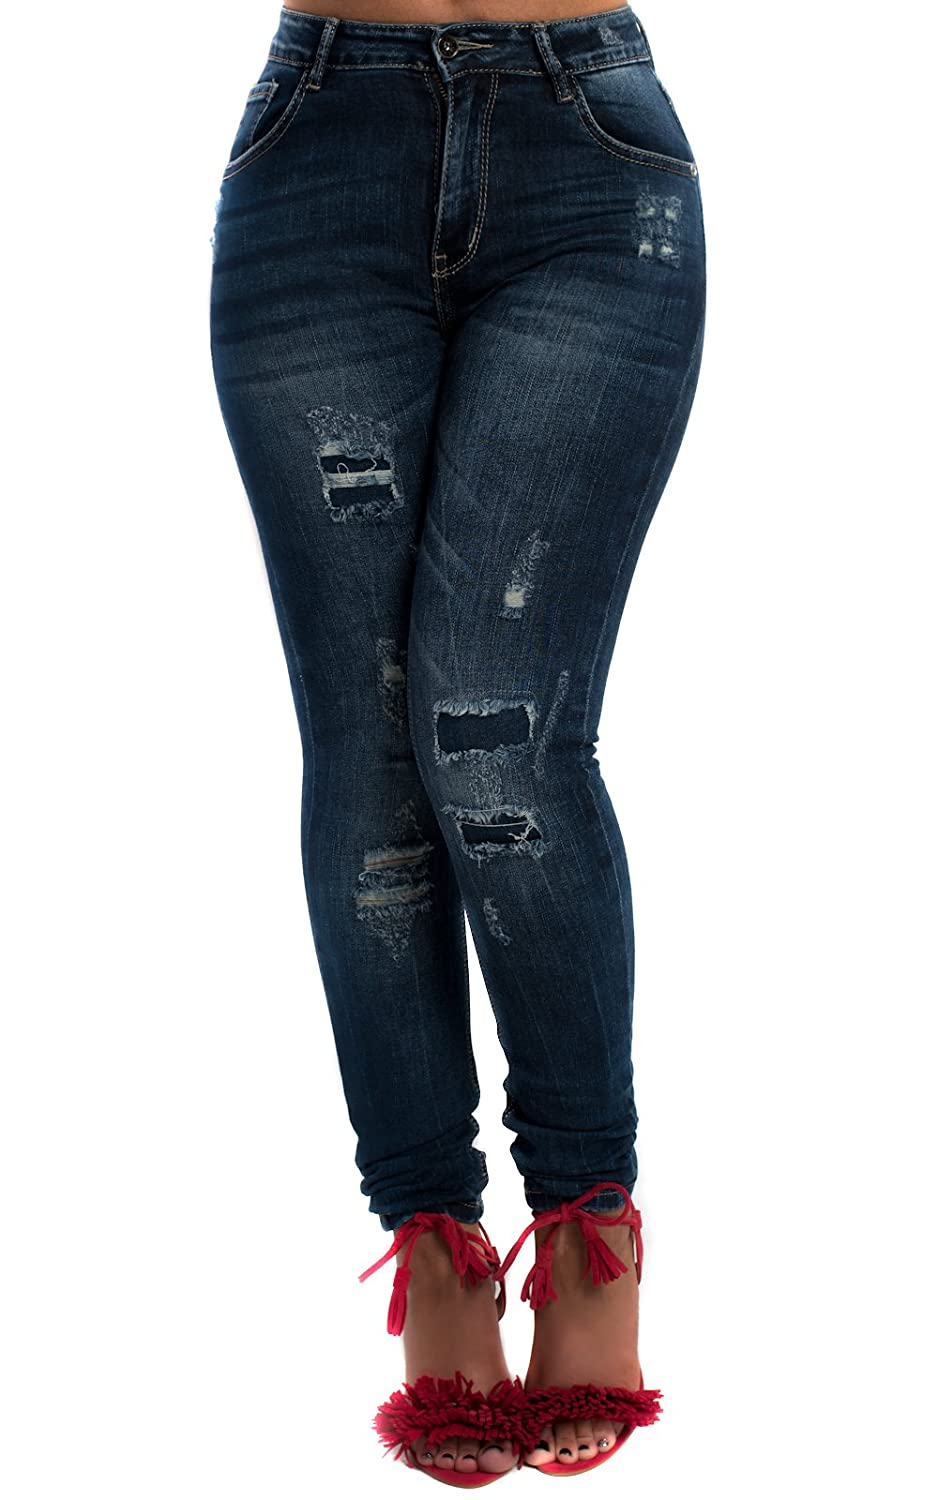 Skinny Fitted Tight Front and Back Pockets Hem Zip Detail Jeans Distressed Denim